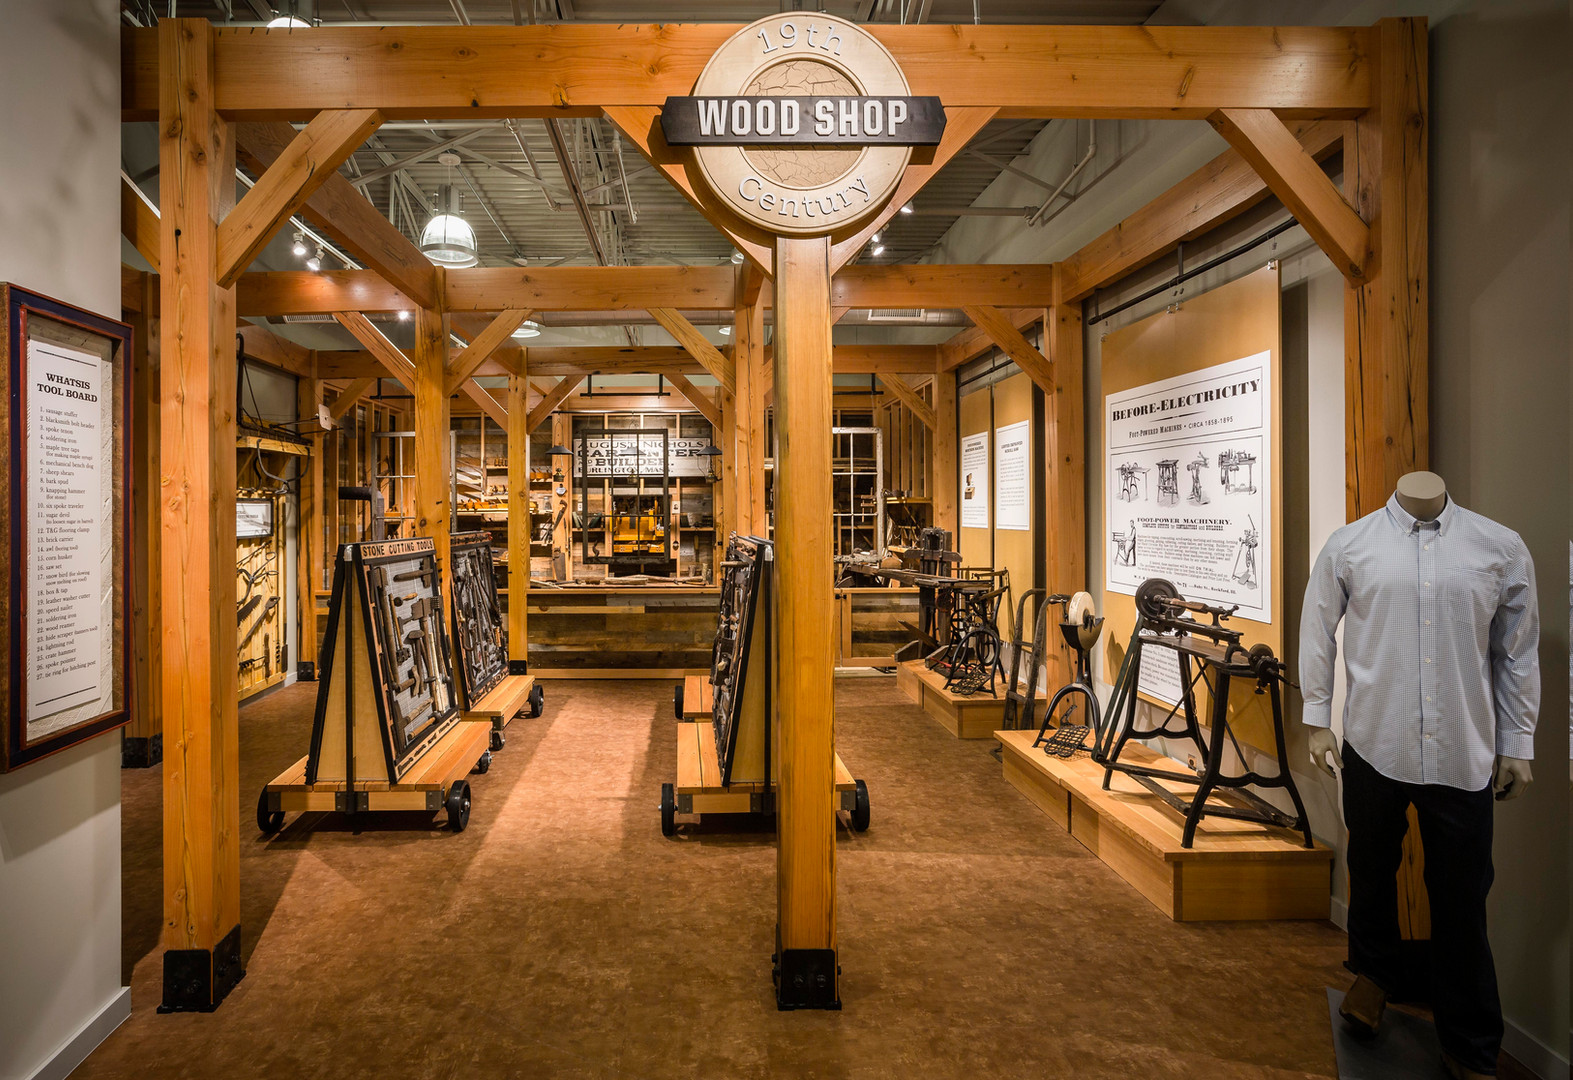 Duluth Trading Co. Custom Wood Shop Burlington, MA